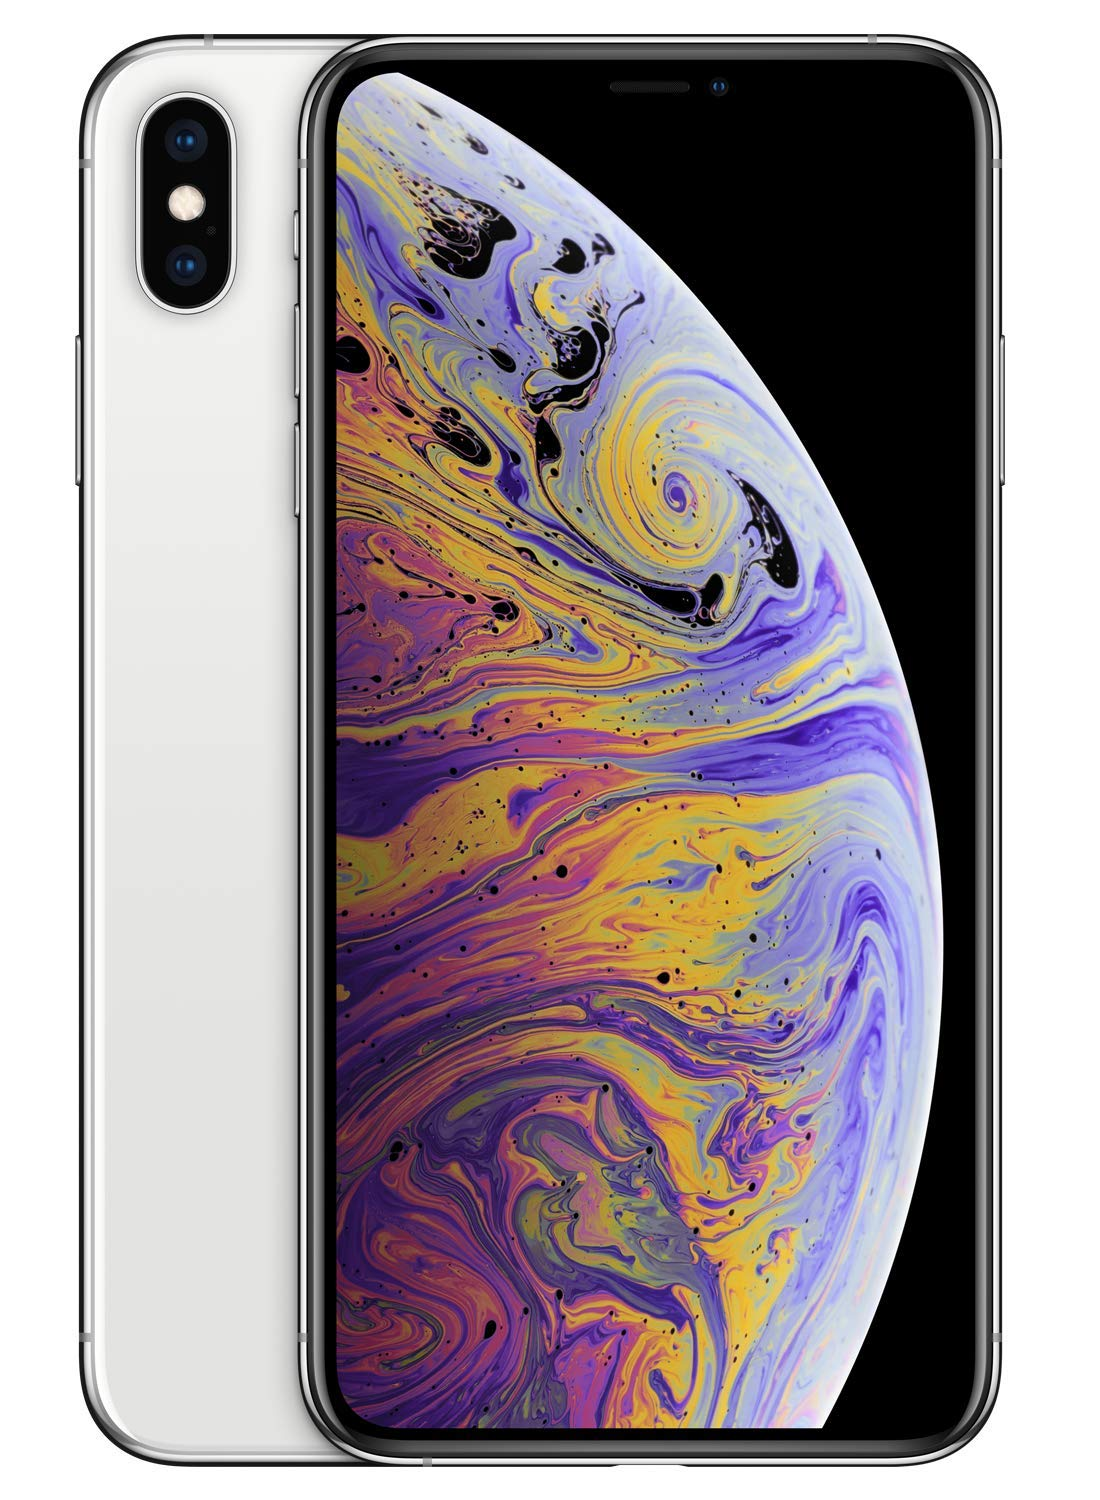 Apple iPhone XS Max 512GB (серебристый) 2 симкарты